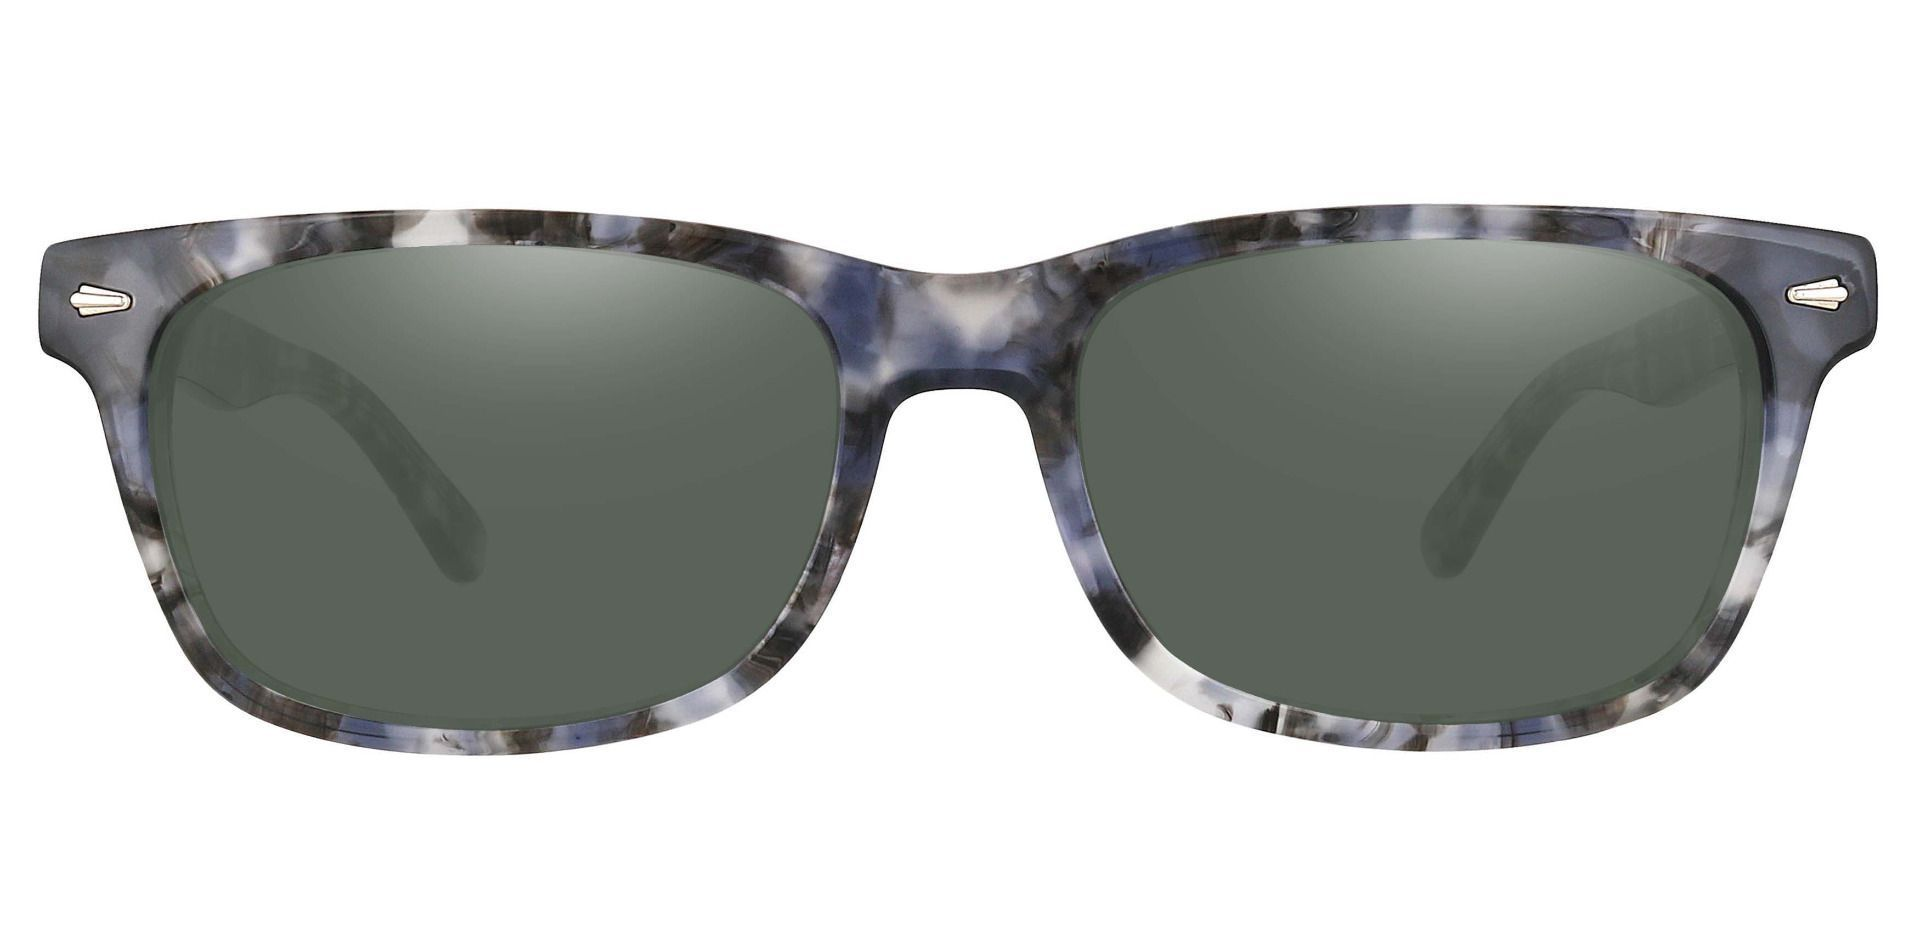 Hendrix Rectangle Lined Bifocal Sunglasses - Floral Frame With Green Lenses